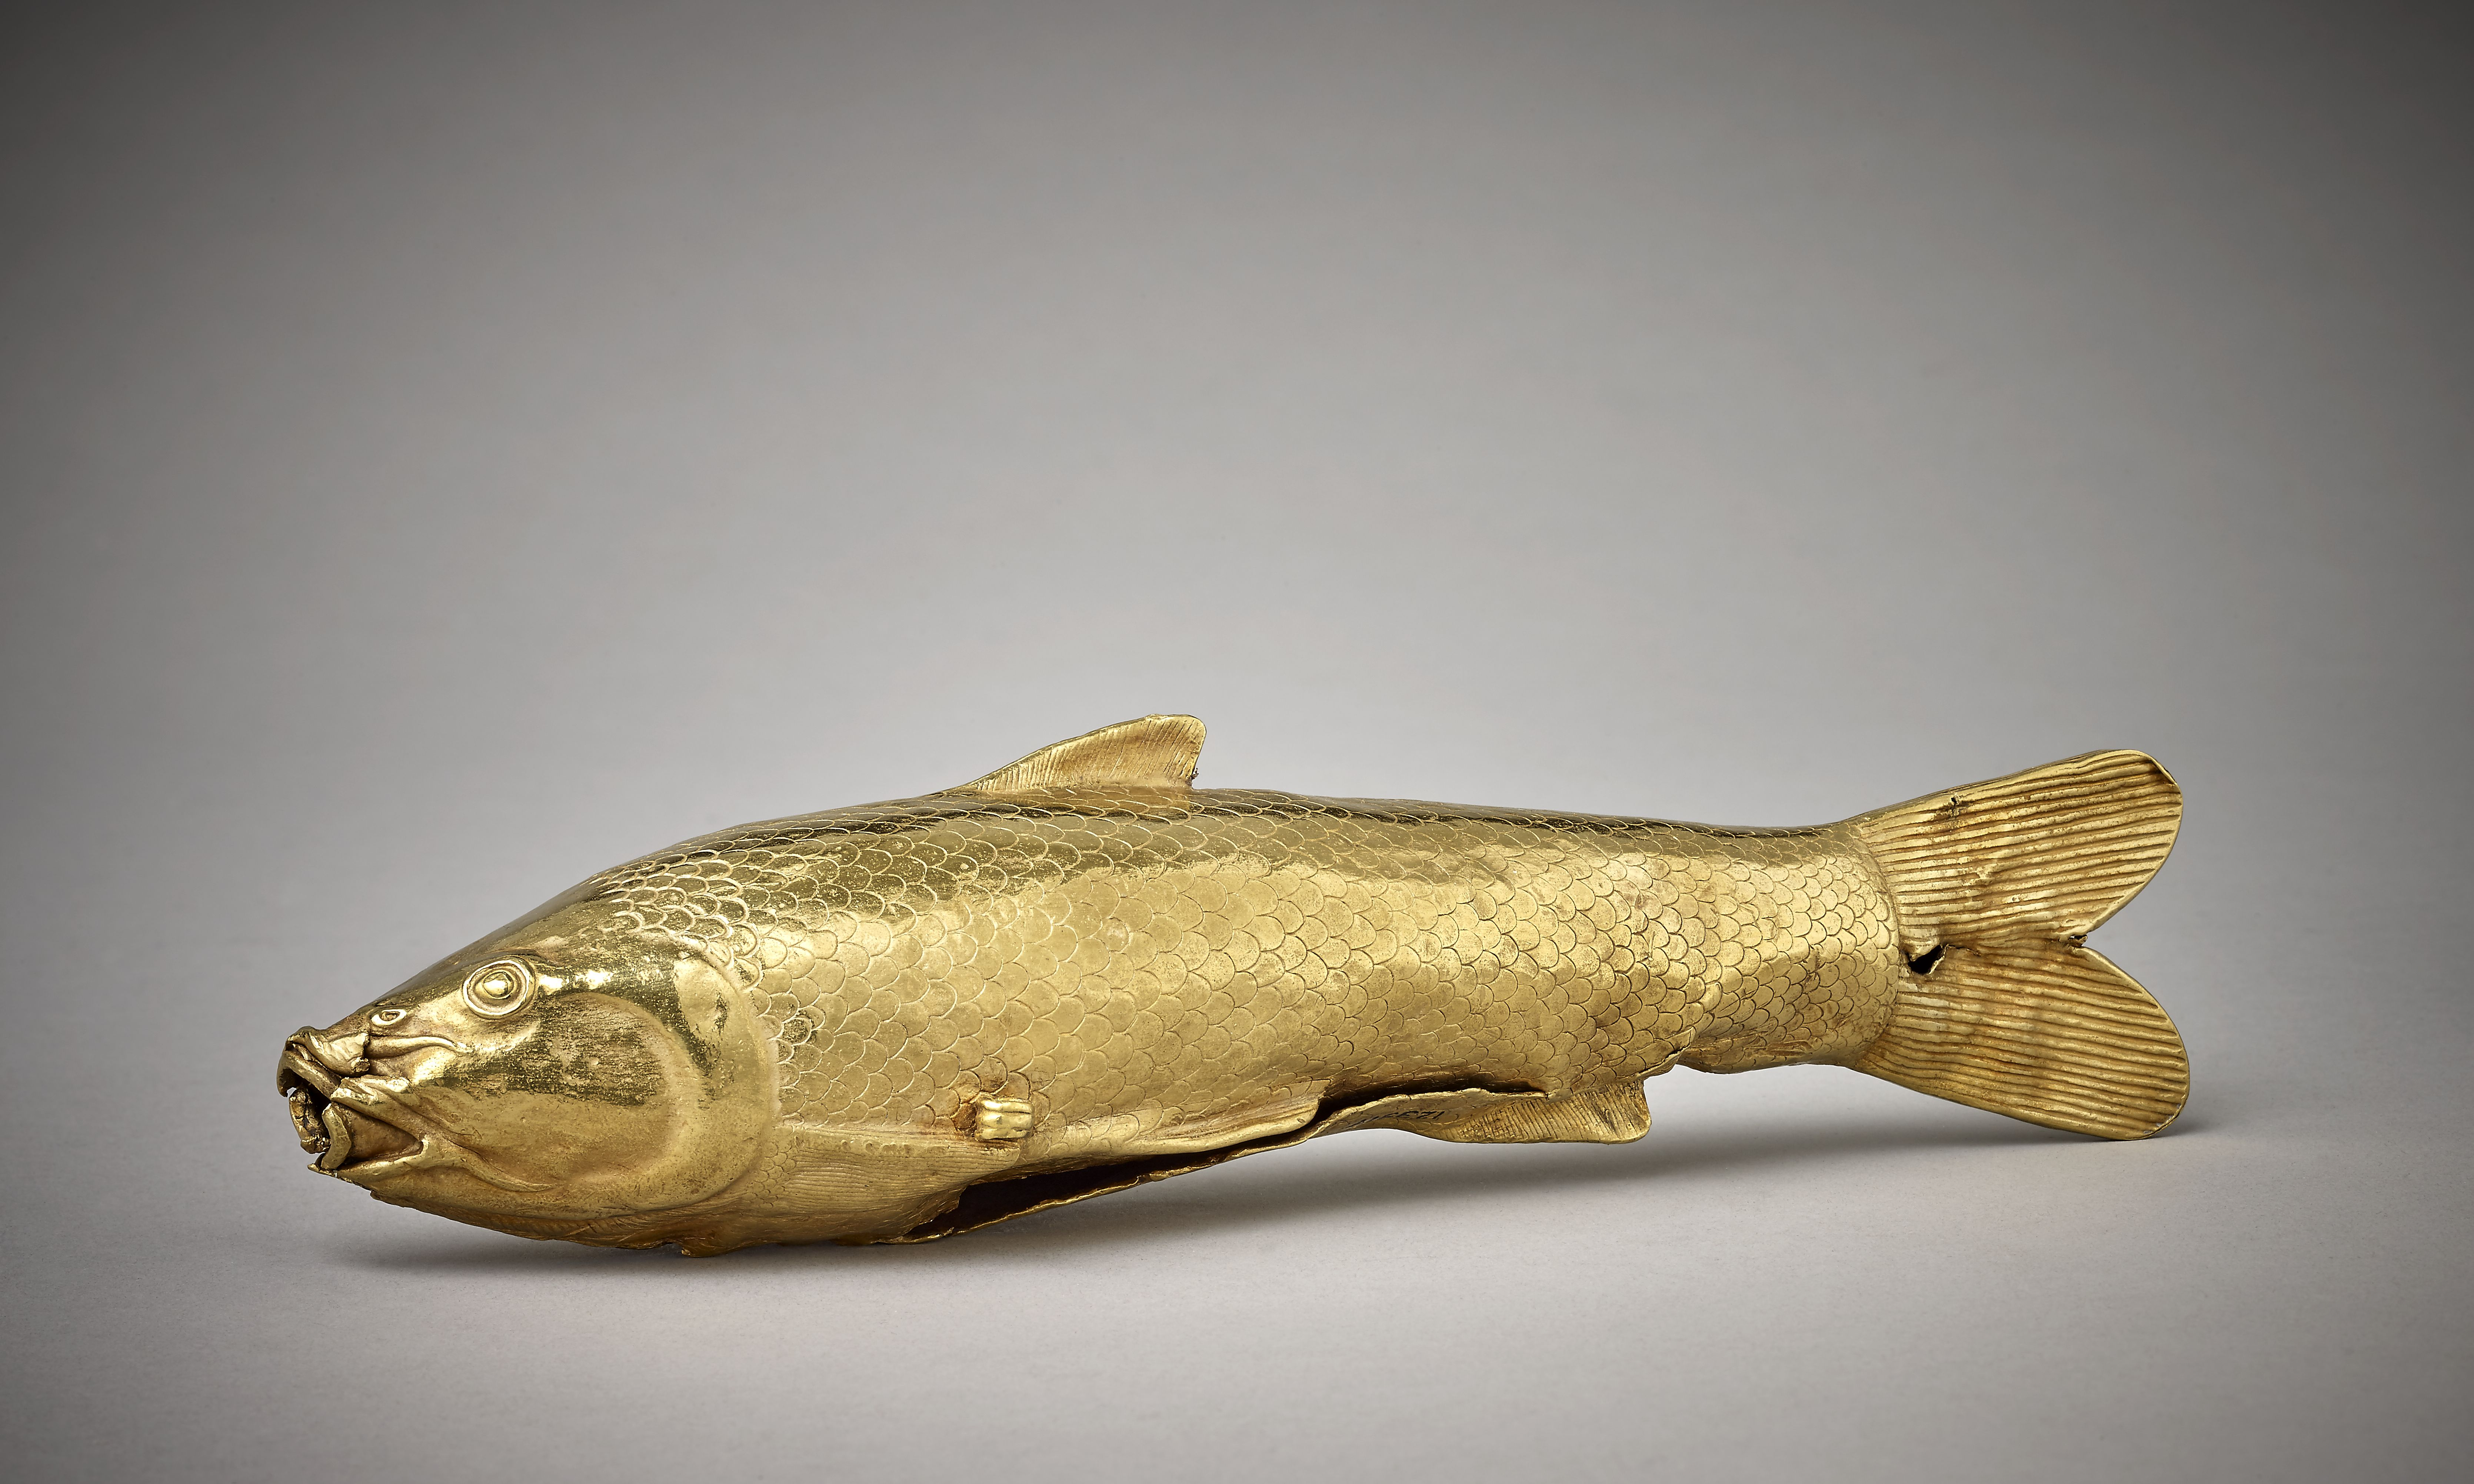 i-frasco-para-aceite-perfumado-i-takht-i-kuwad-tayikistan-500-400-a-c-oro-c-the-trustees-of-the-british-museum-1